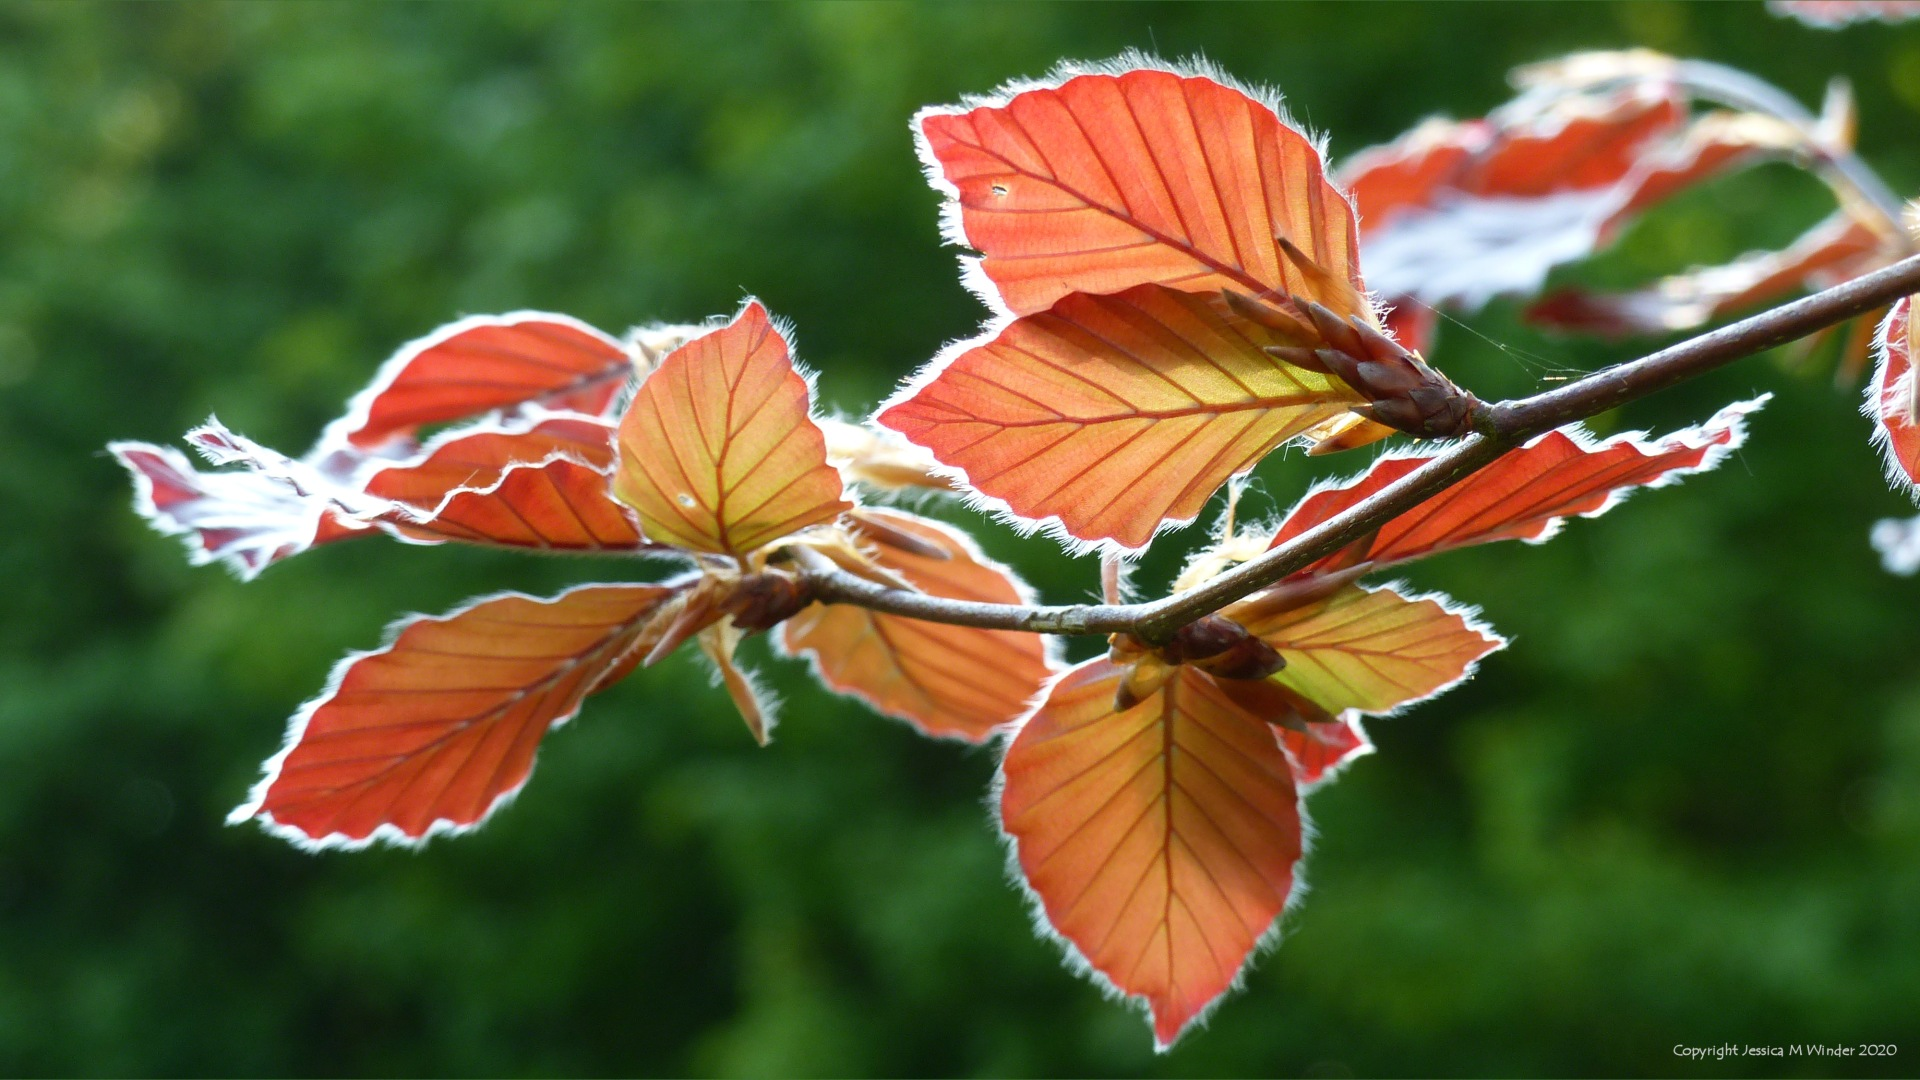 Copper Beech leaves